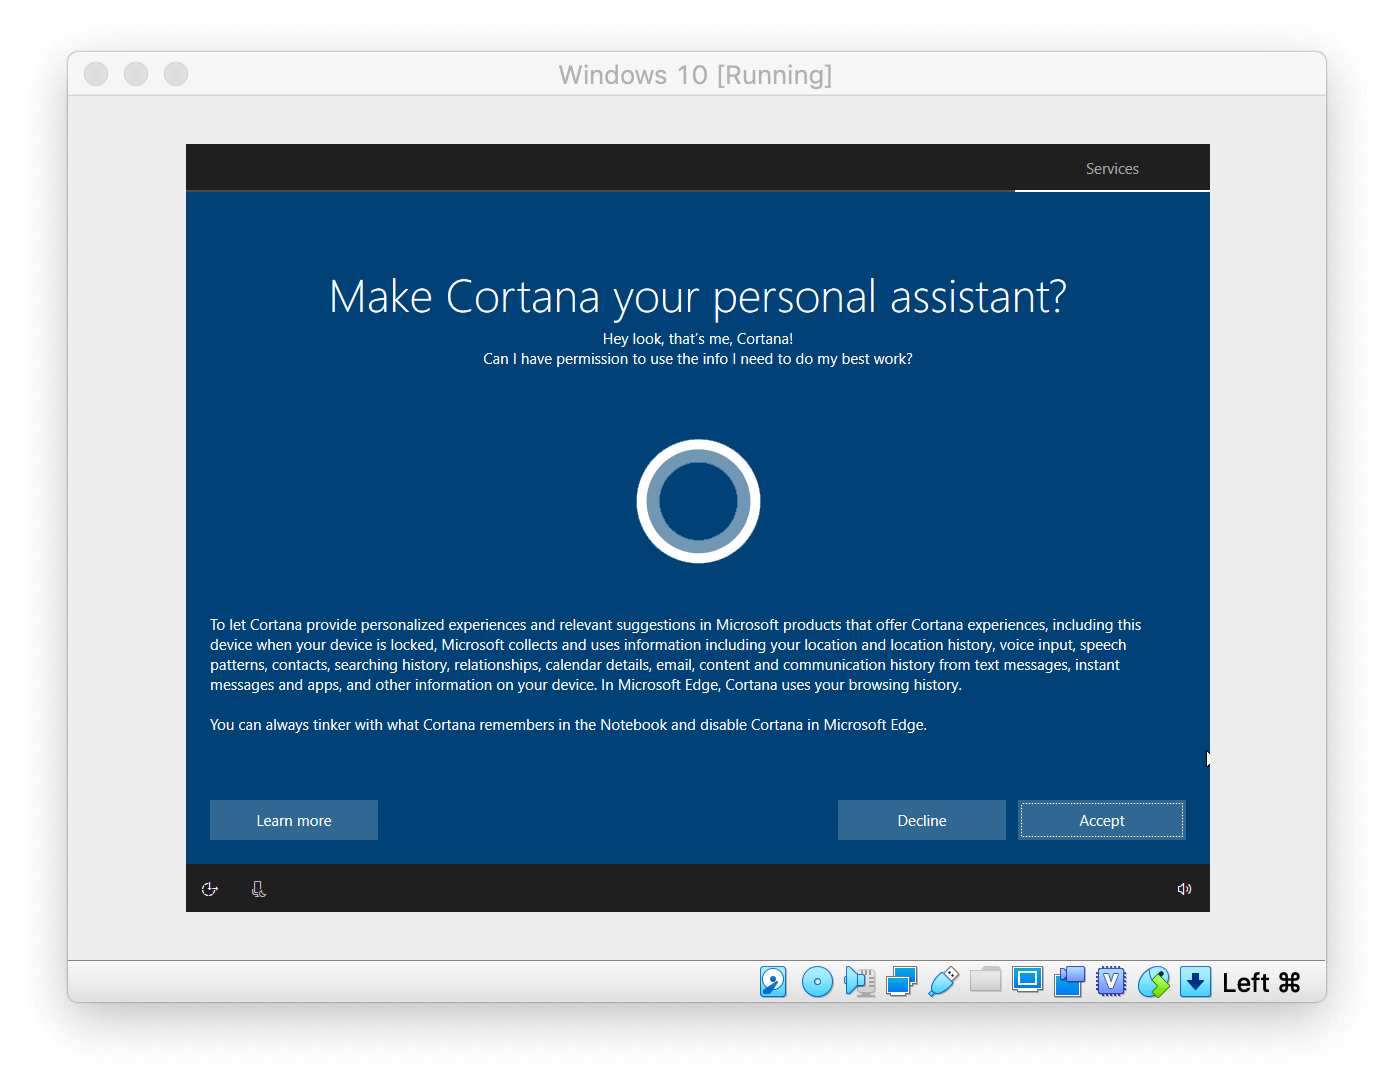 Windows Setup asking to make Cortana your personal assistant